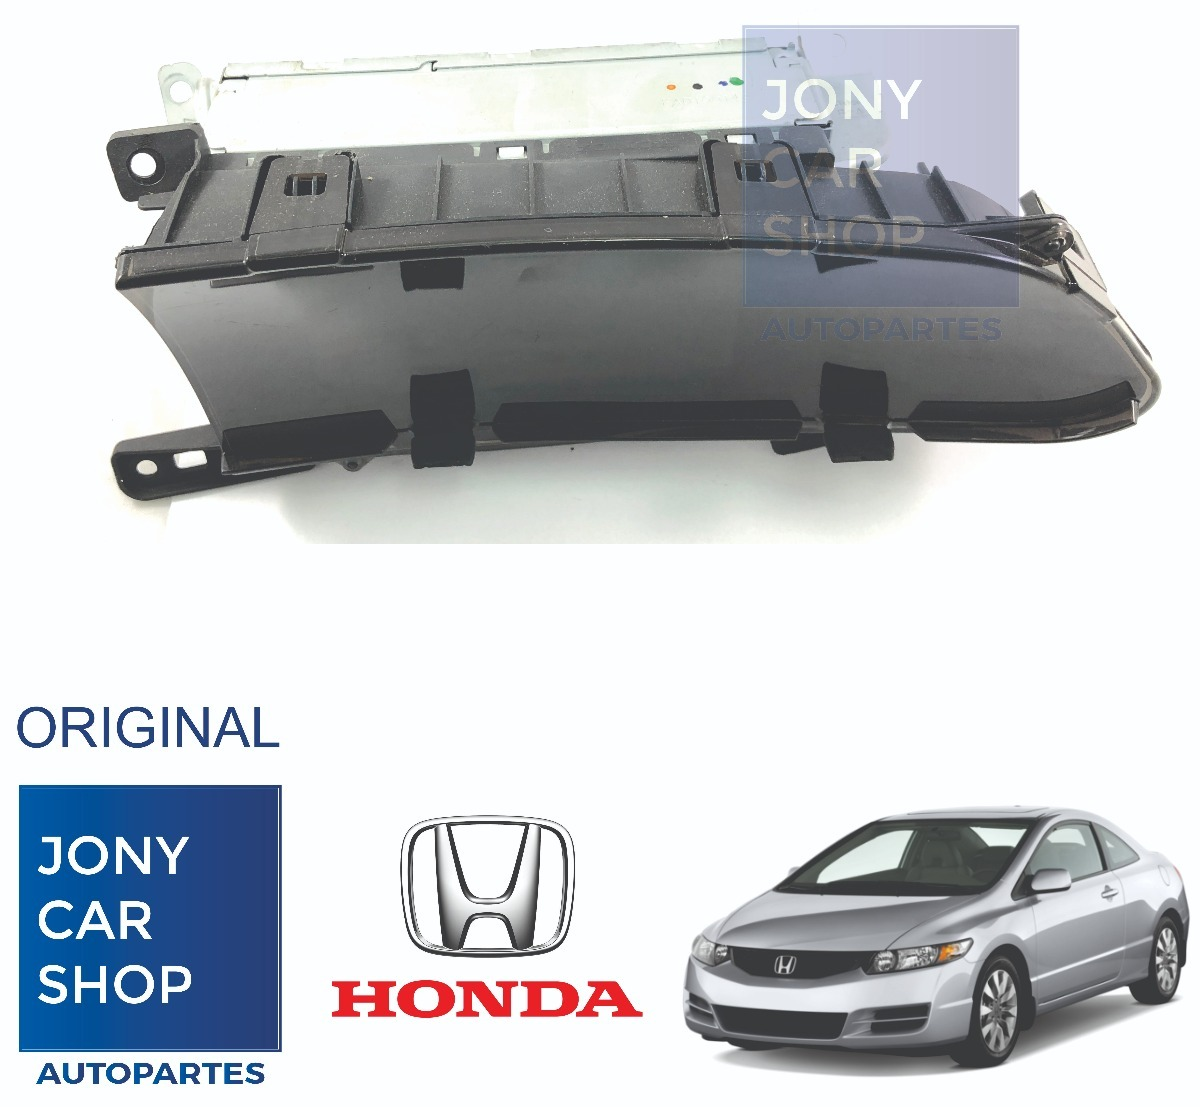 2006-2010 Honda Civic manuale officina workshop manual